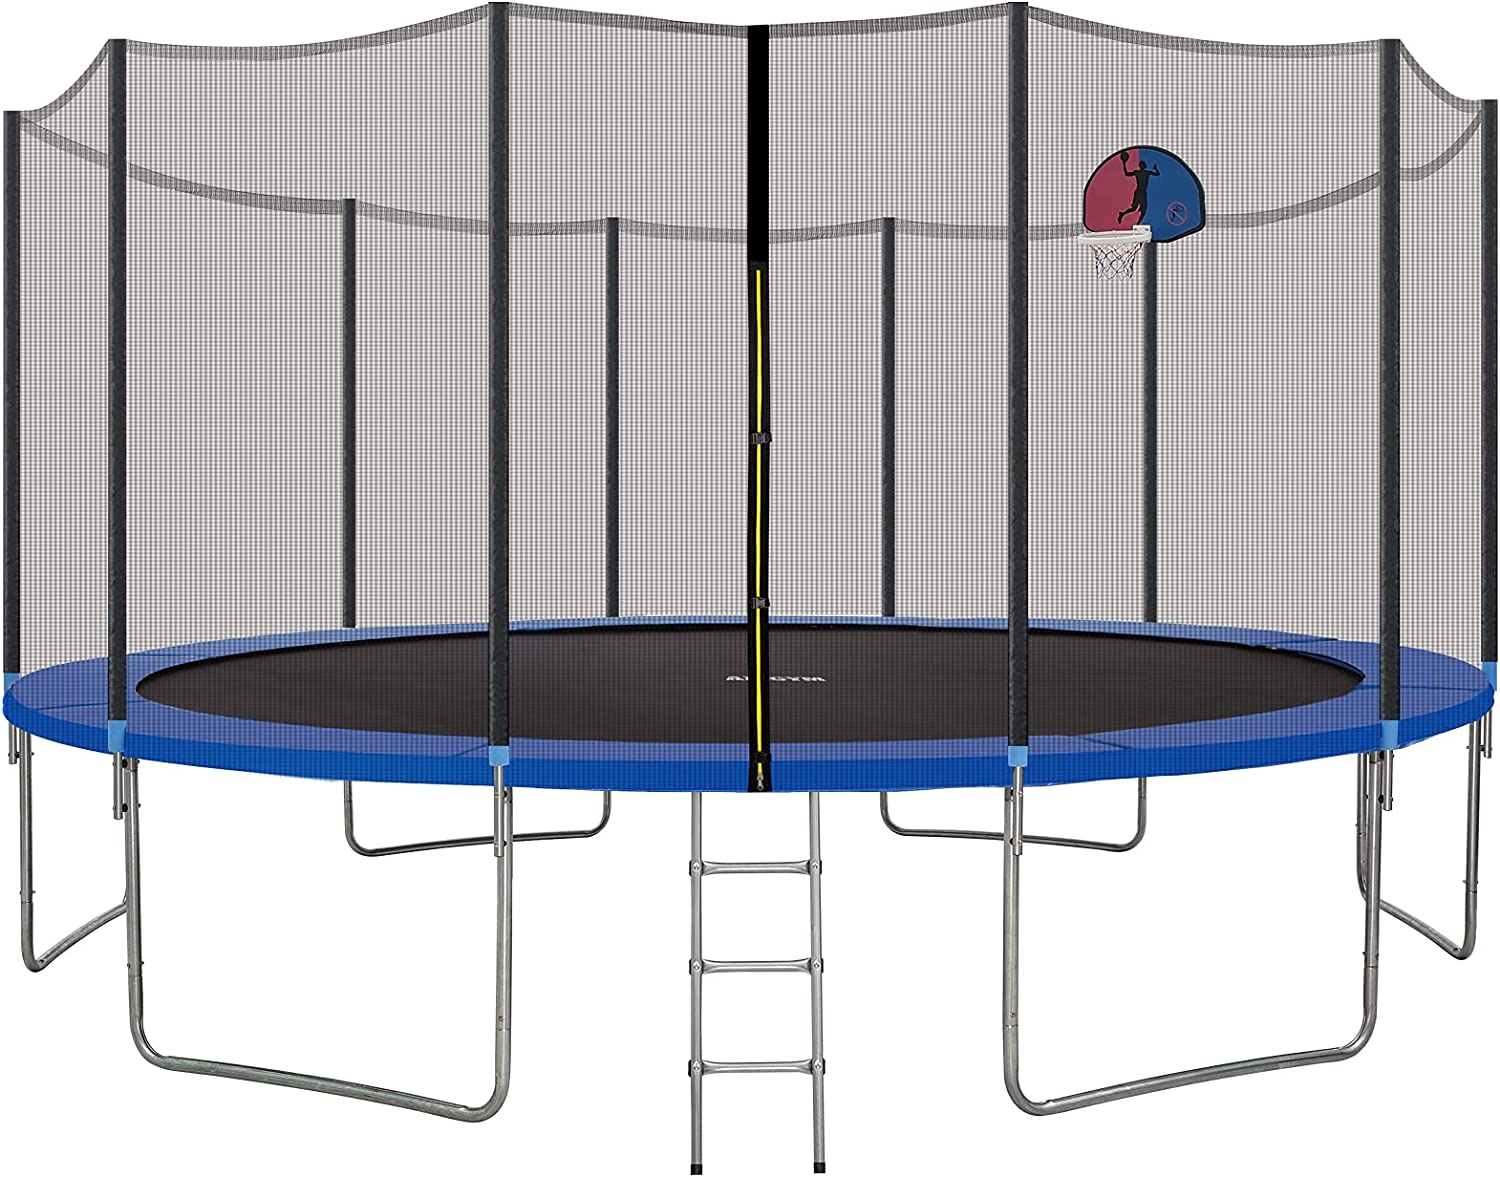 AMGYM 16 Max 75% OFF FT Trampoline with Hoo Over item handling Safety Enclosure Net Basketball